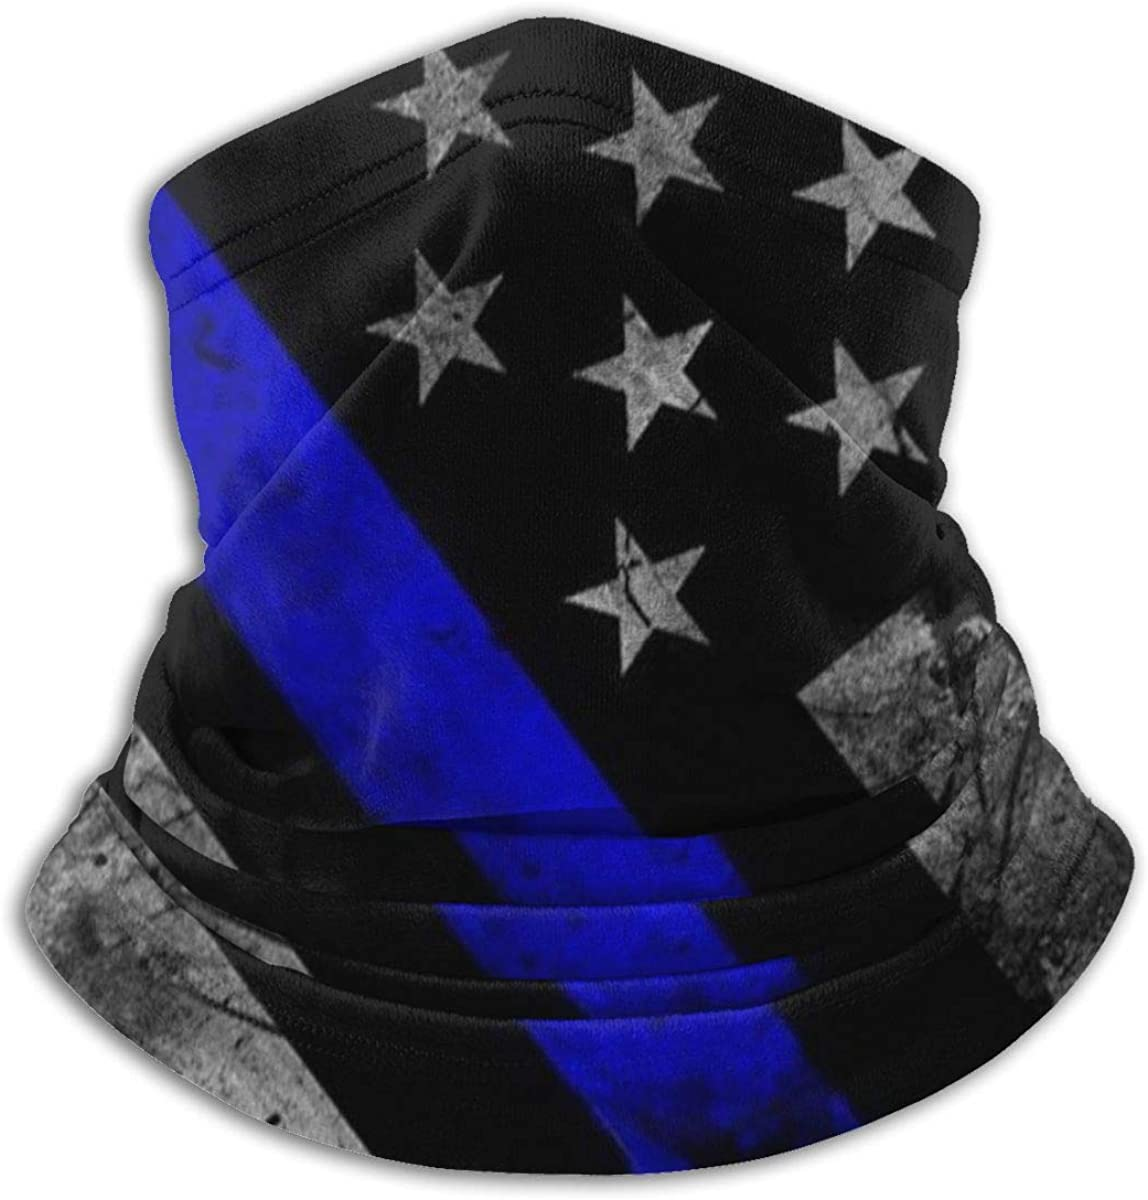 Face Mask Bandana Blue Lives Matter Flag Ear Face Mask for Men Women, Dust-Free Neck Warmer Cover Sportswear for Cycling, Cold Weather, Ski, Multifunctional Shield Scarf: Clothing